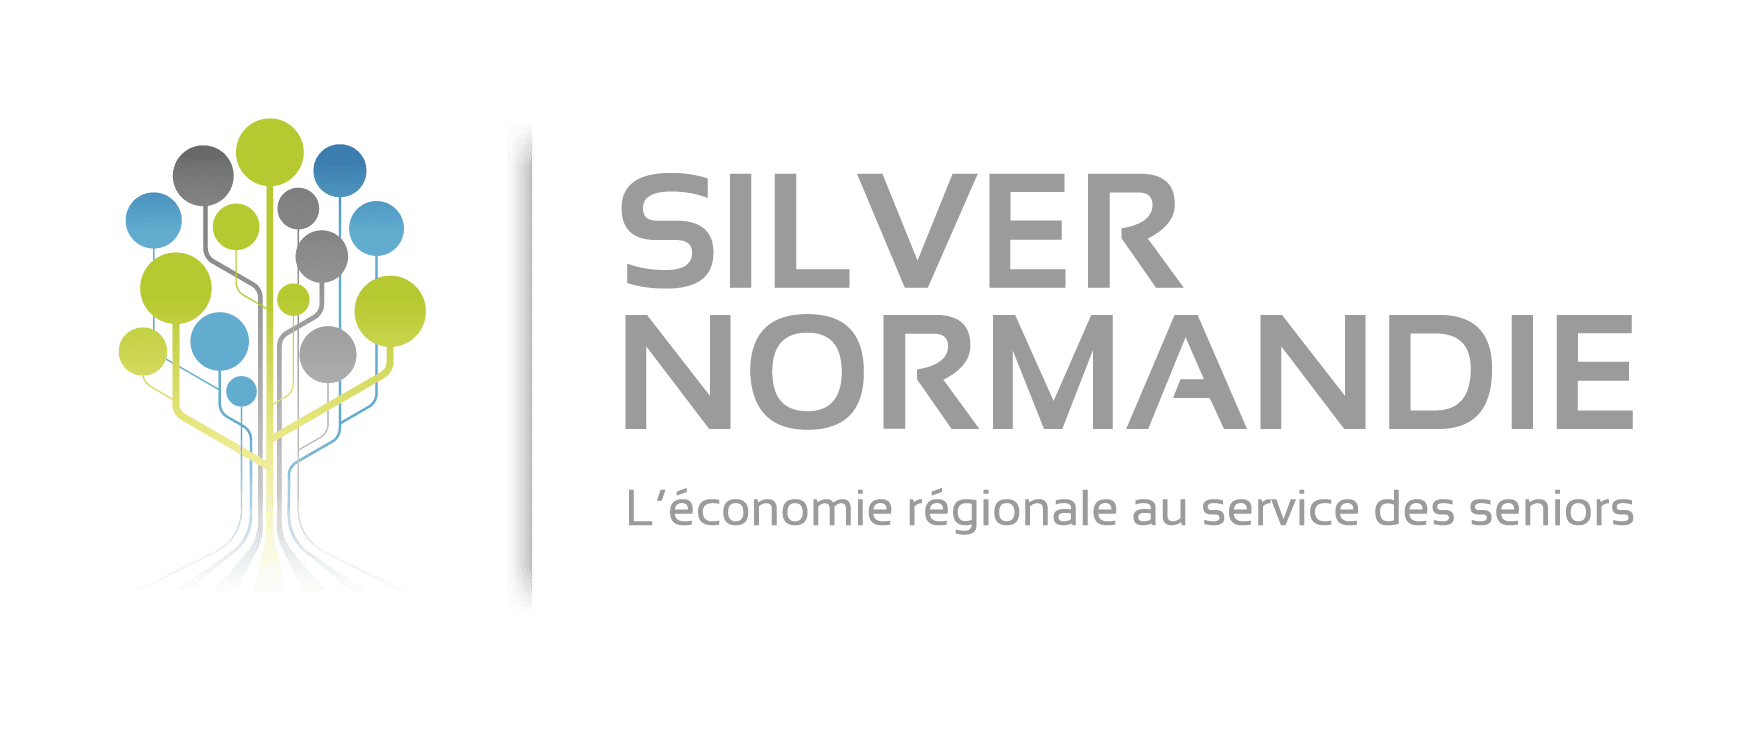 silver normandy logo